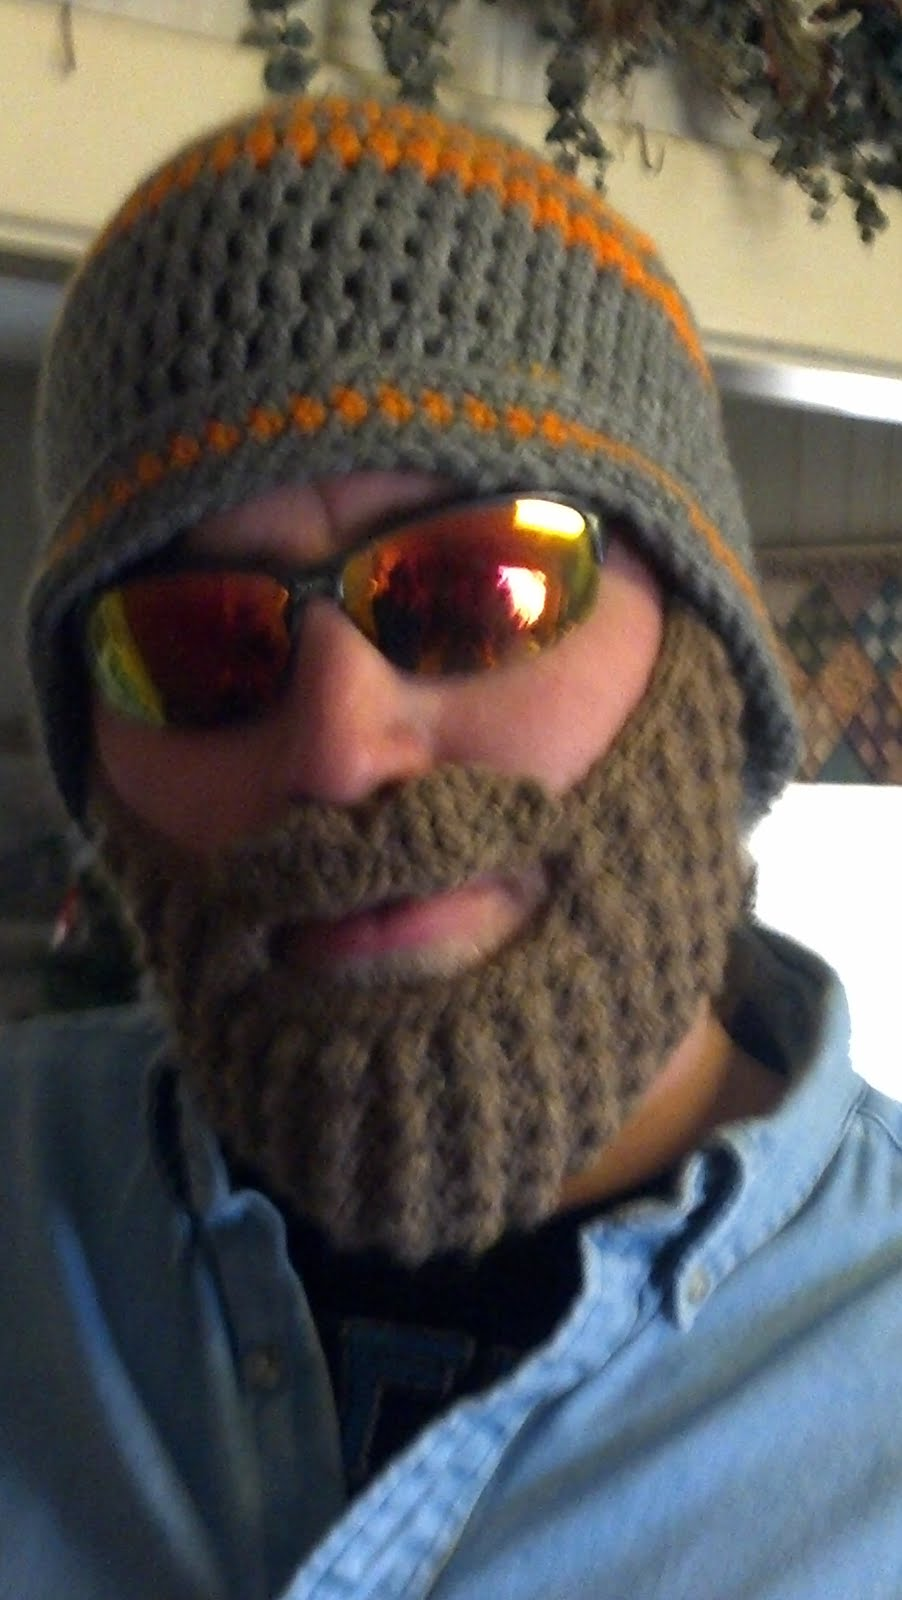 7f9402ad6ef Have you seen those crazy crocheted beard hats that are becoming popular on  the internets  My brother-in-law asked if I could make him one this  Christmas.